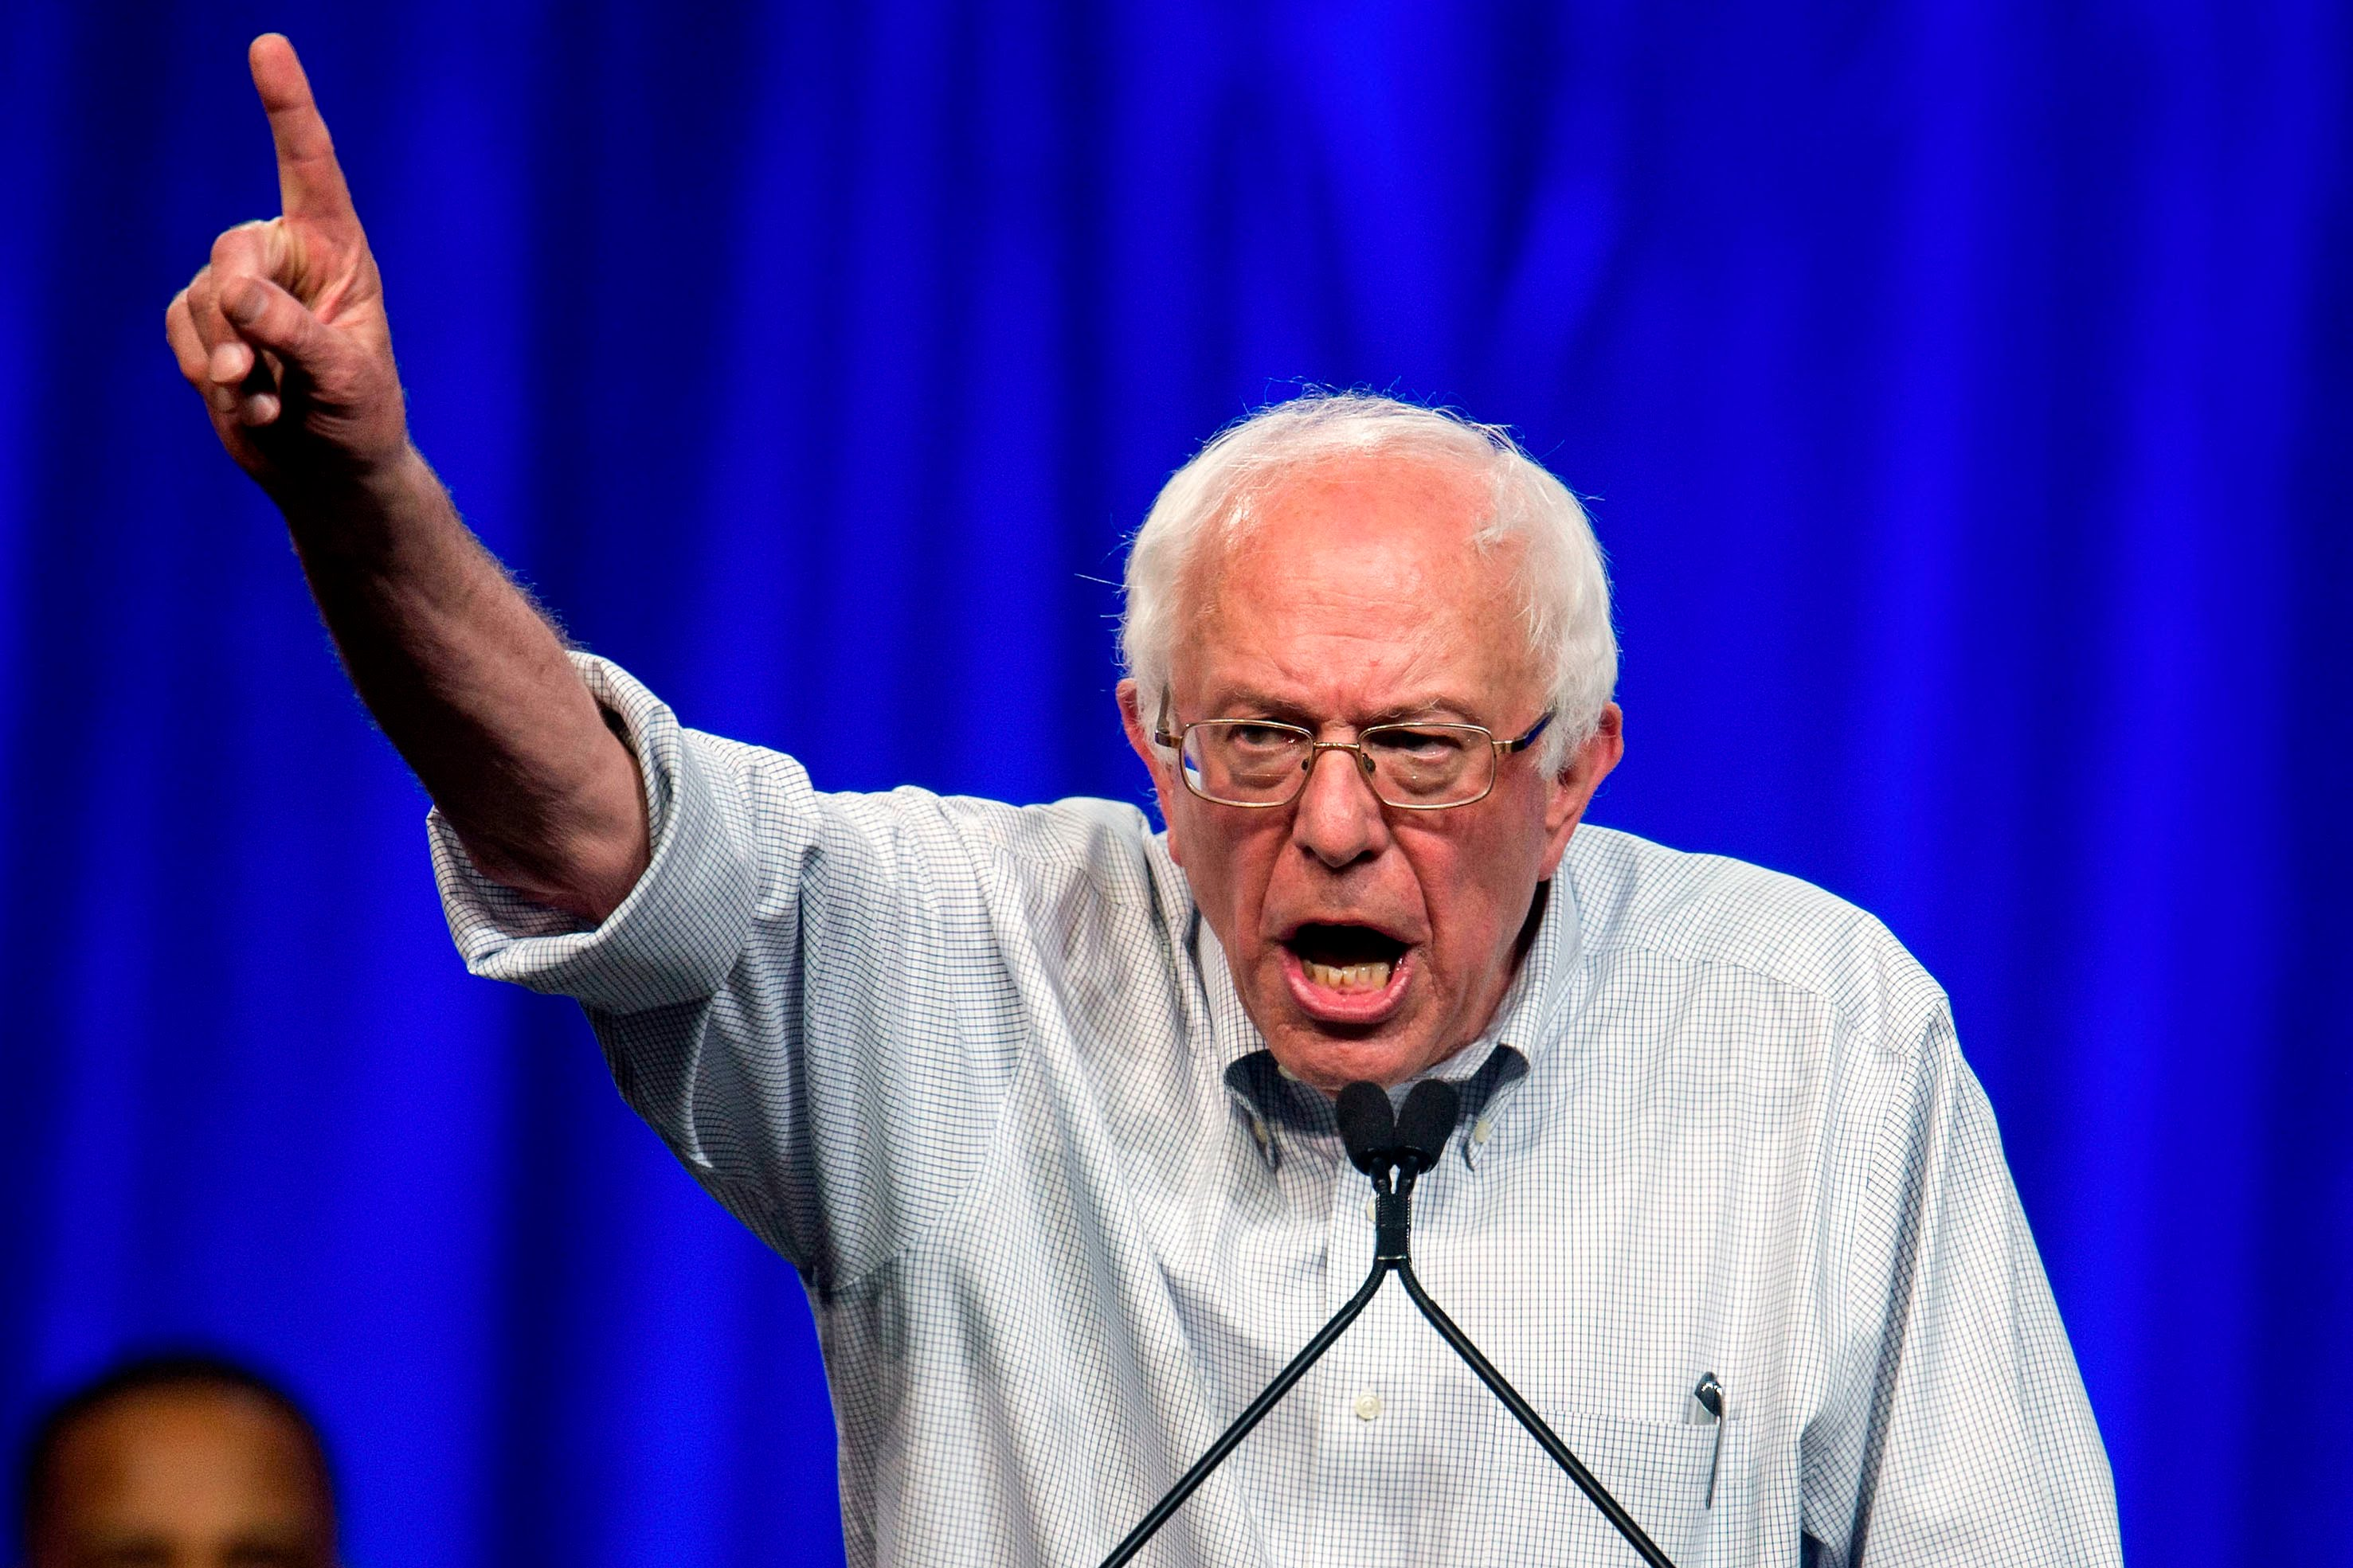 Bernie Sanders is passionate, if he is anything